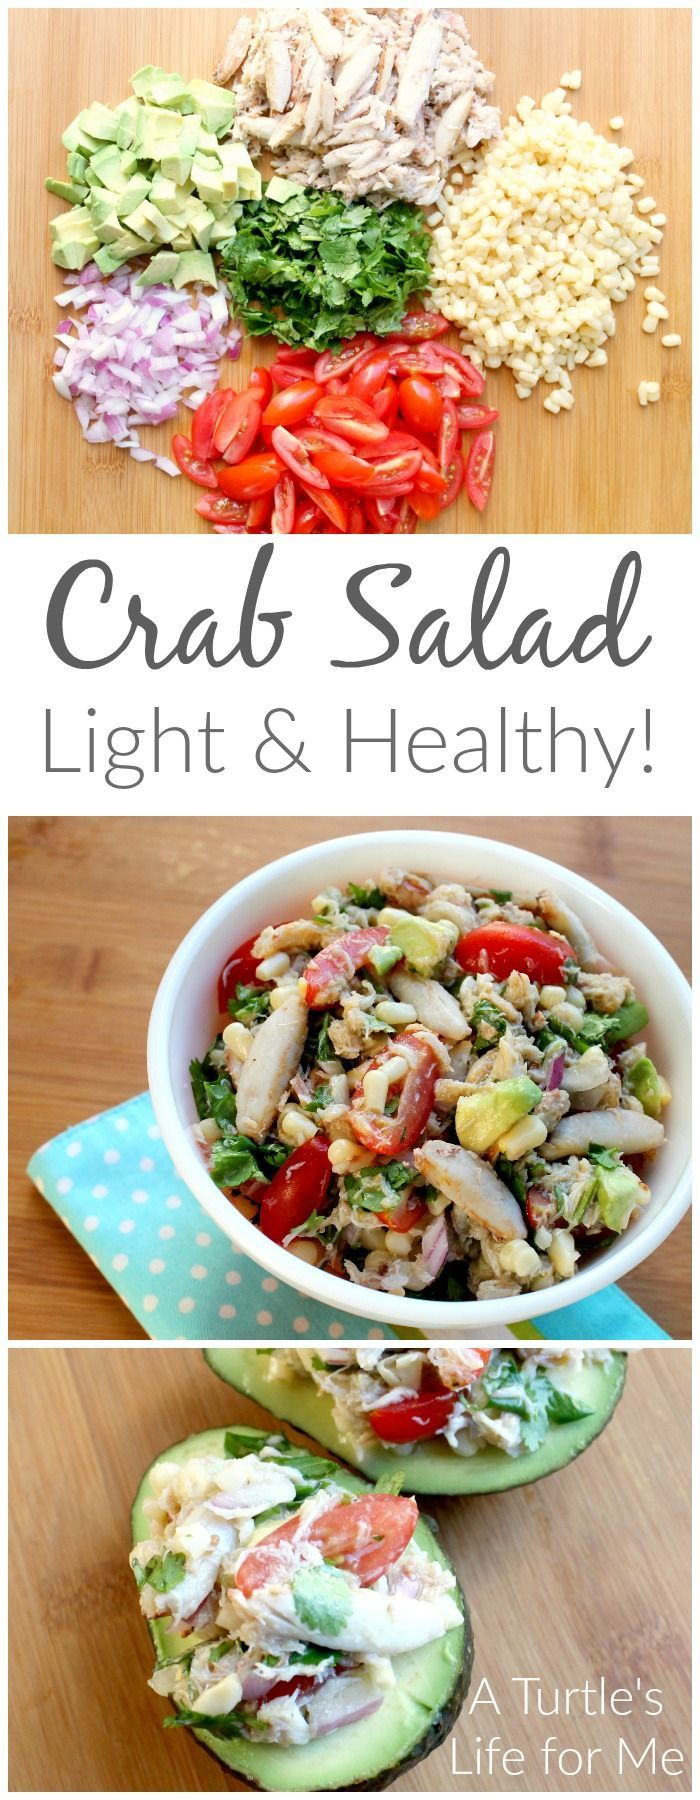 Crab Salad Recipe using fresh garden ingredients! So perfect for a light and healthy summer meal!